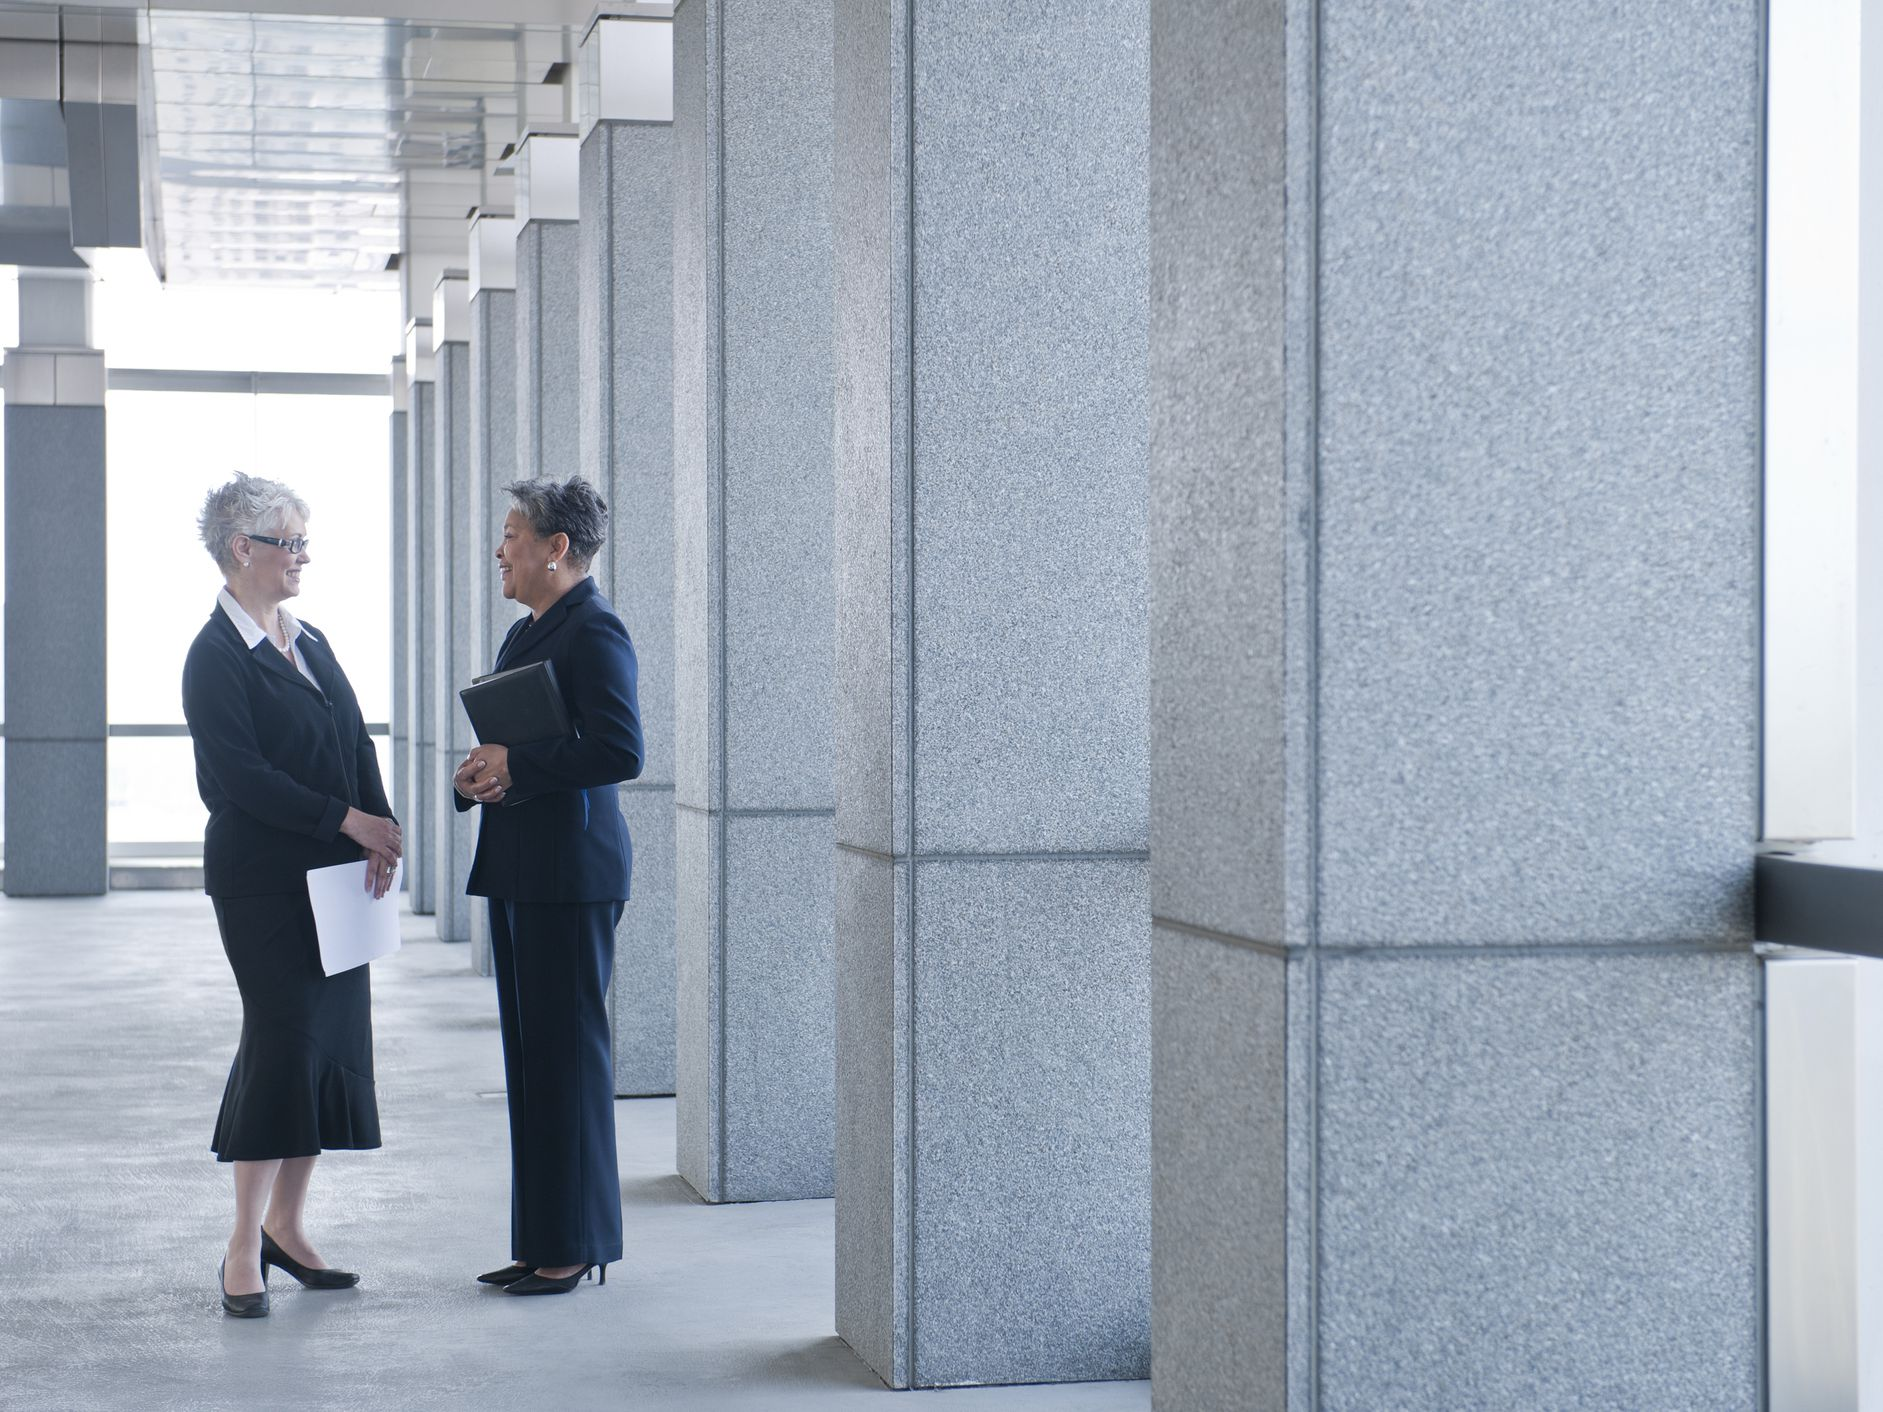 Keeping Federal Employee Health Benefits in Retirement